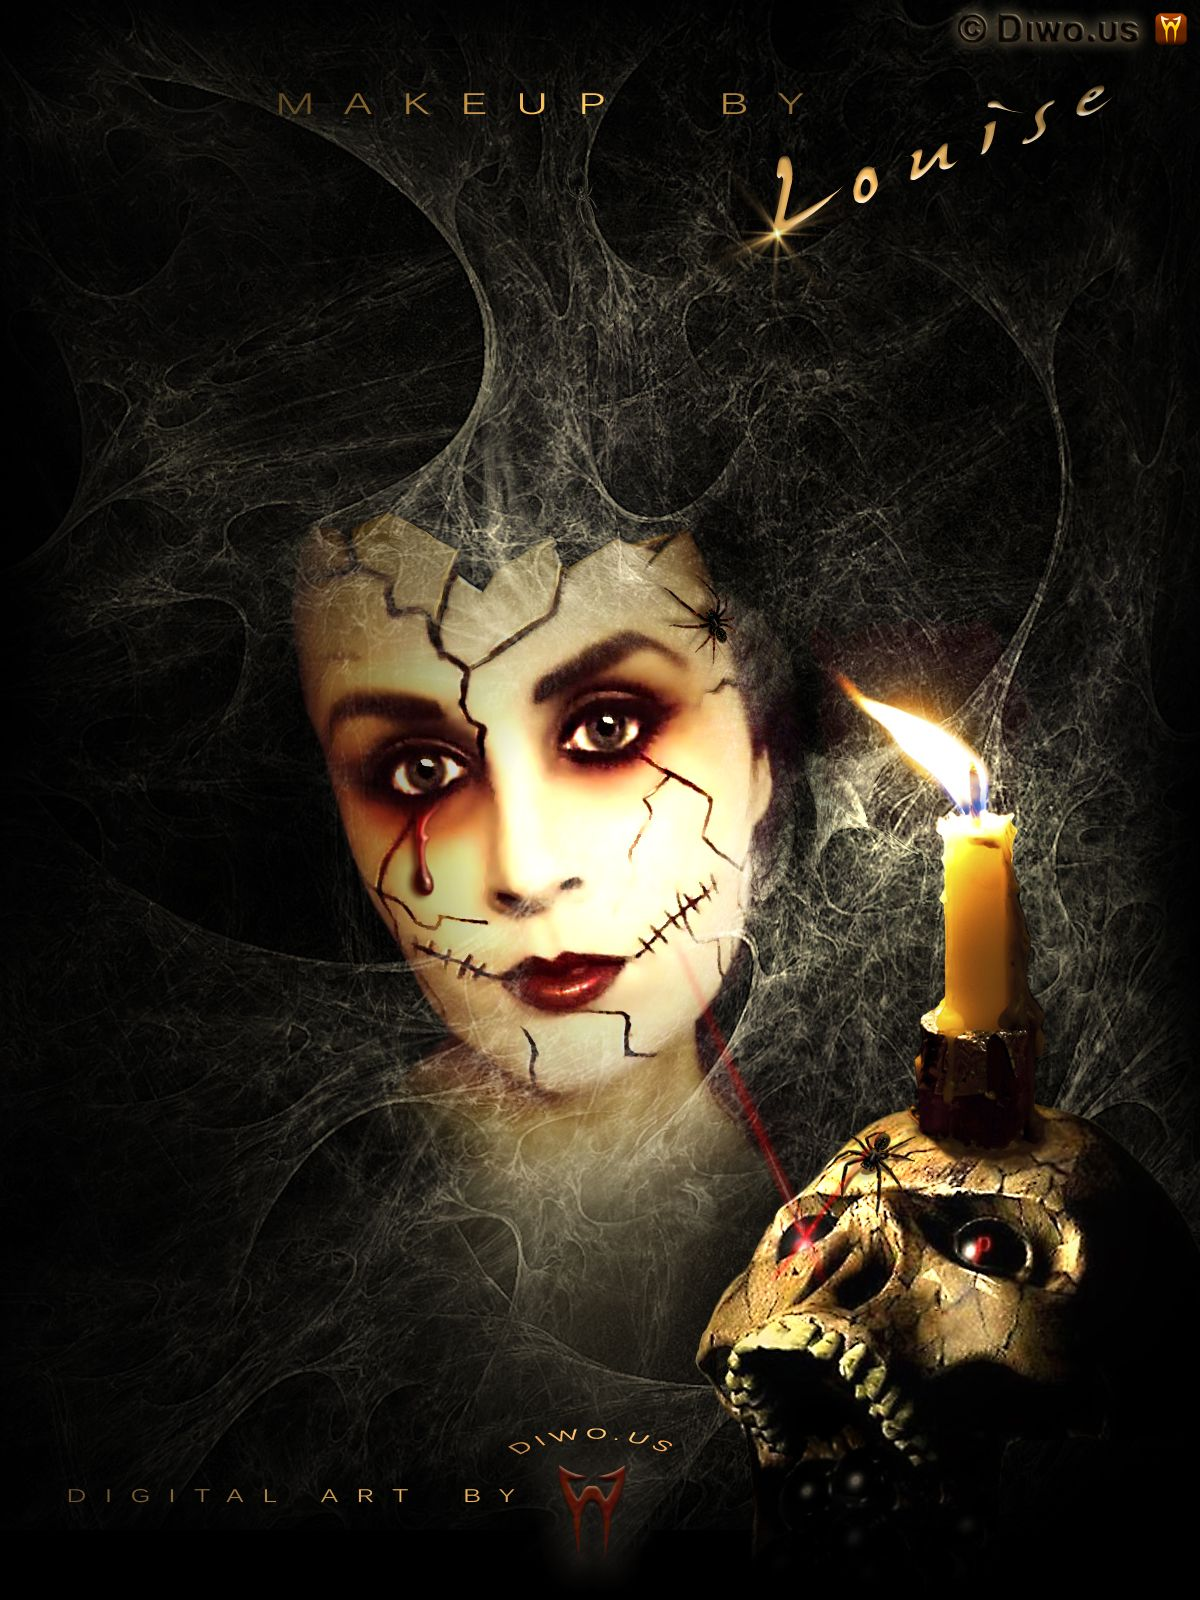 Diwous - MakeUp by Louise McDonagh, Halloween, Digital Art, paintbrush, photomontage, photo, manipulation, scary, skull, candle, spider, net, web, broken, porcelain, doll, fotomontáž, rozbitá panenka, lebka, svíčka, pavouk, pavučina